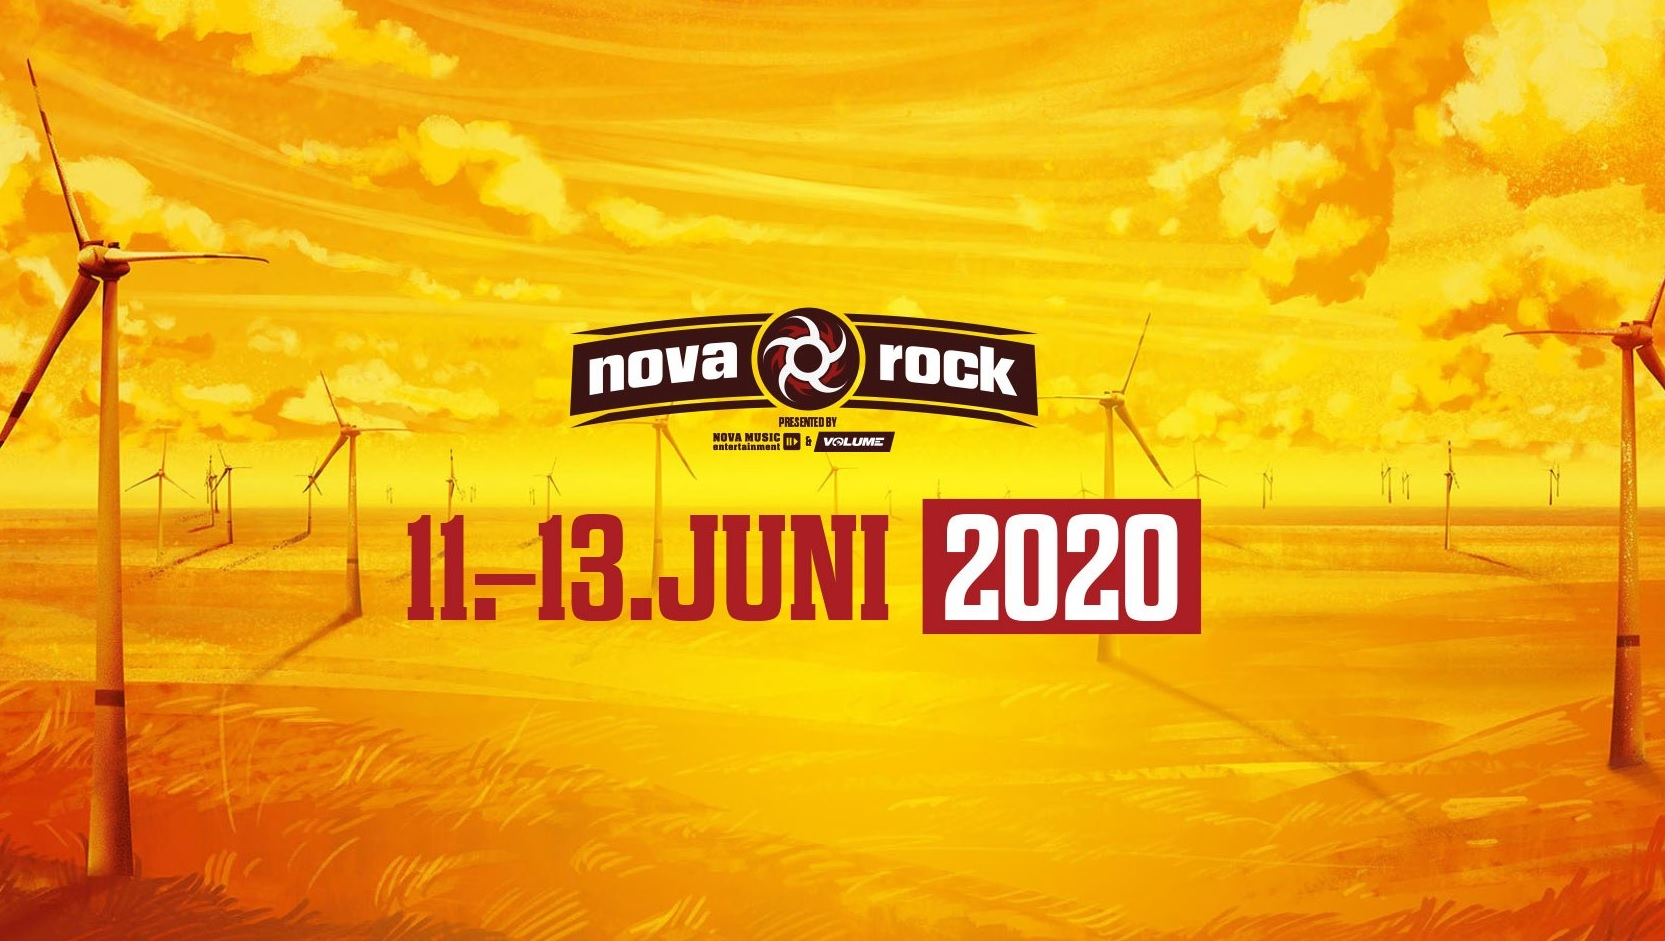 Nova Rock Festival 020